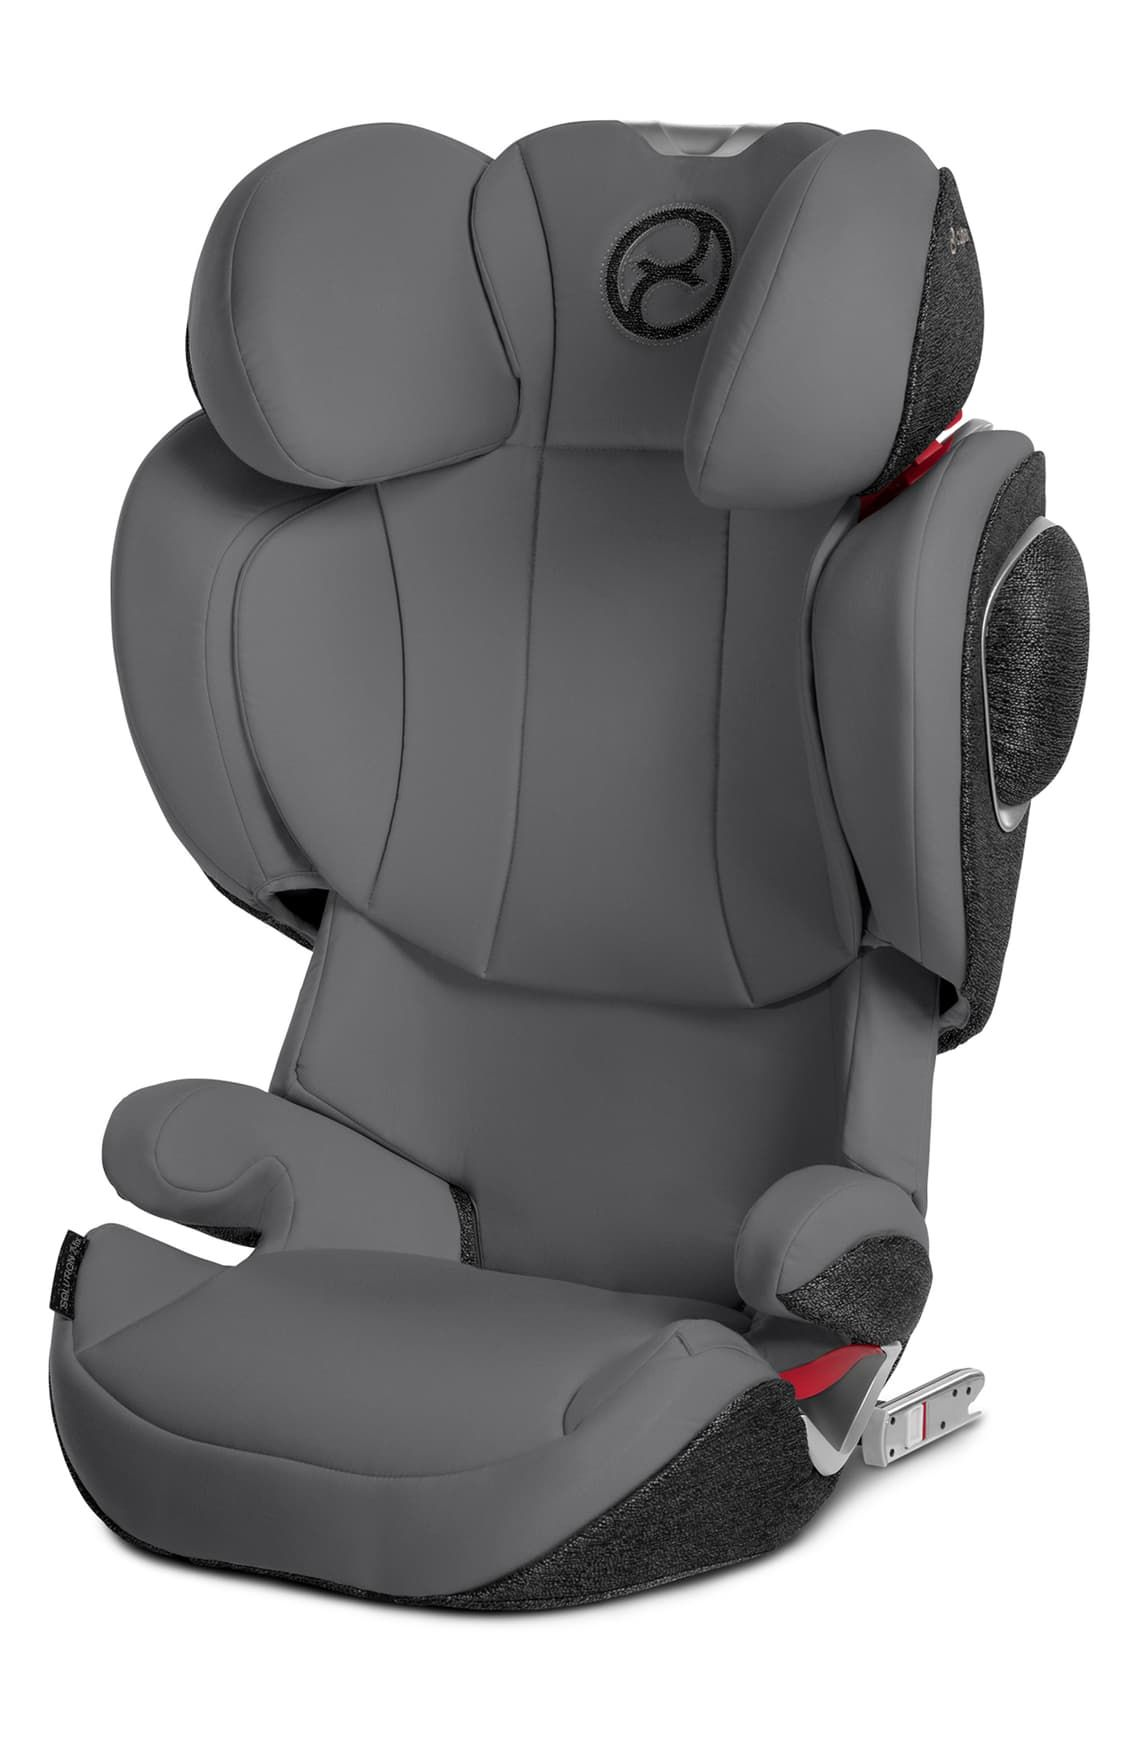 Cybex Solution Z Fix Car Seat Nordstrom Car Seats Booster Seat Booster Car Seat